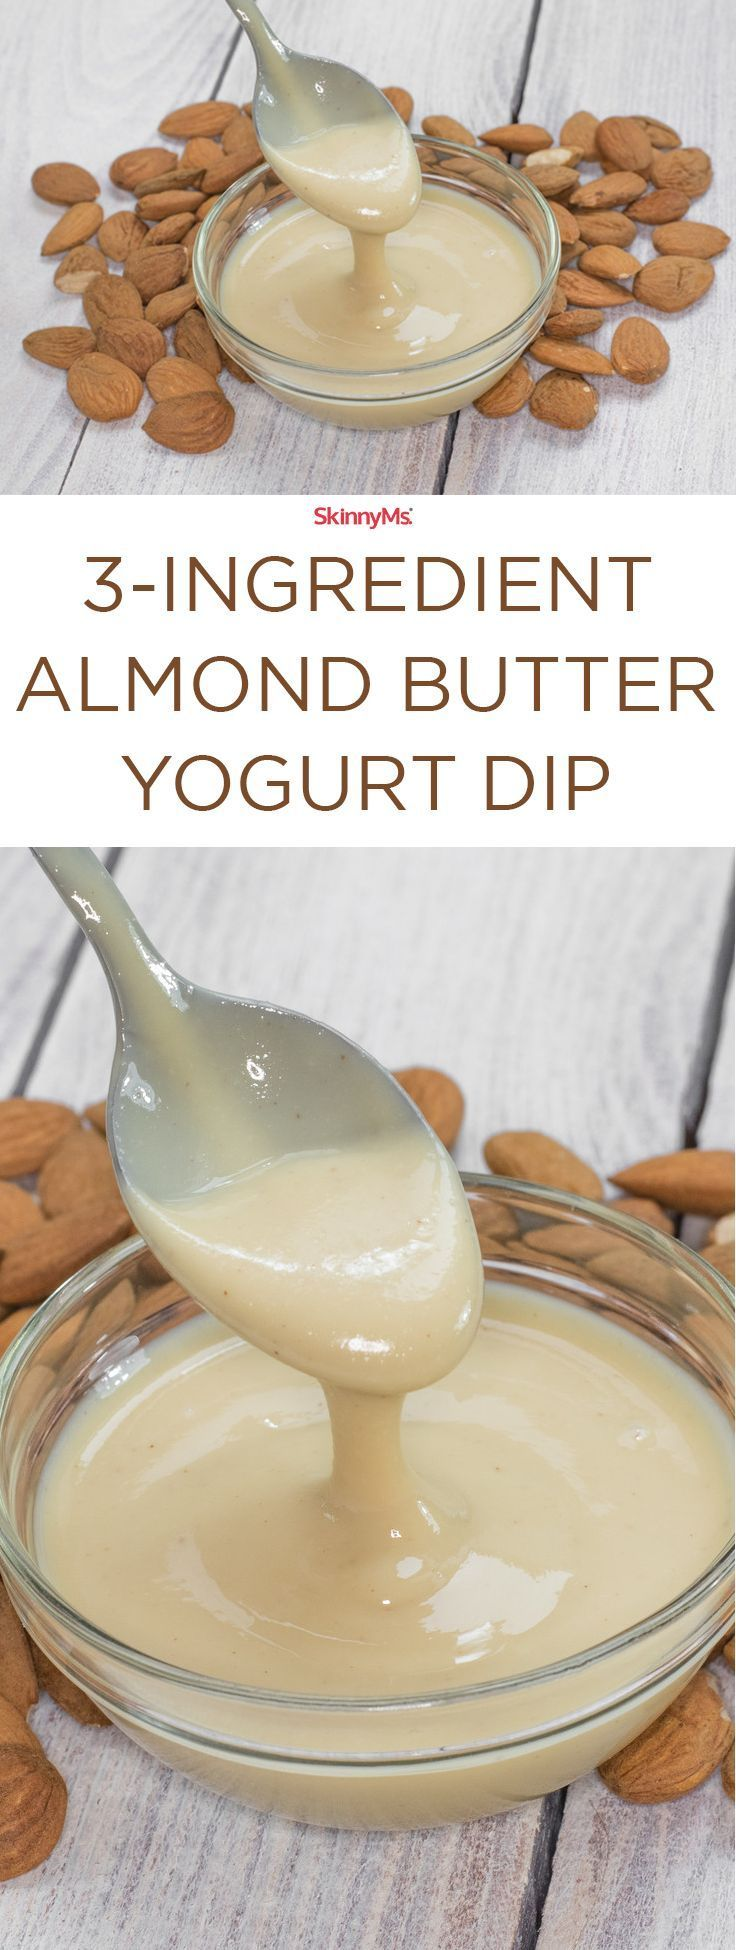 Jazz up your next event with this 3-Ingredient Almond Butter Yogurt Dip!